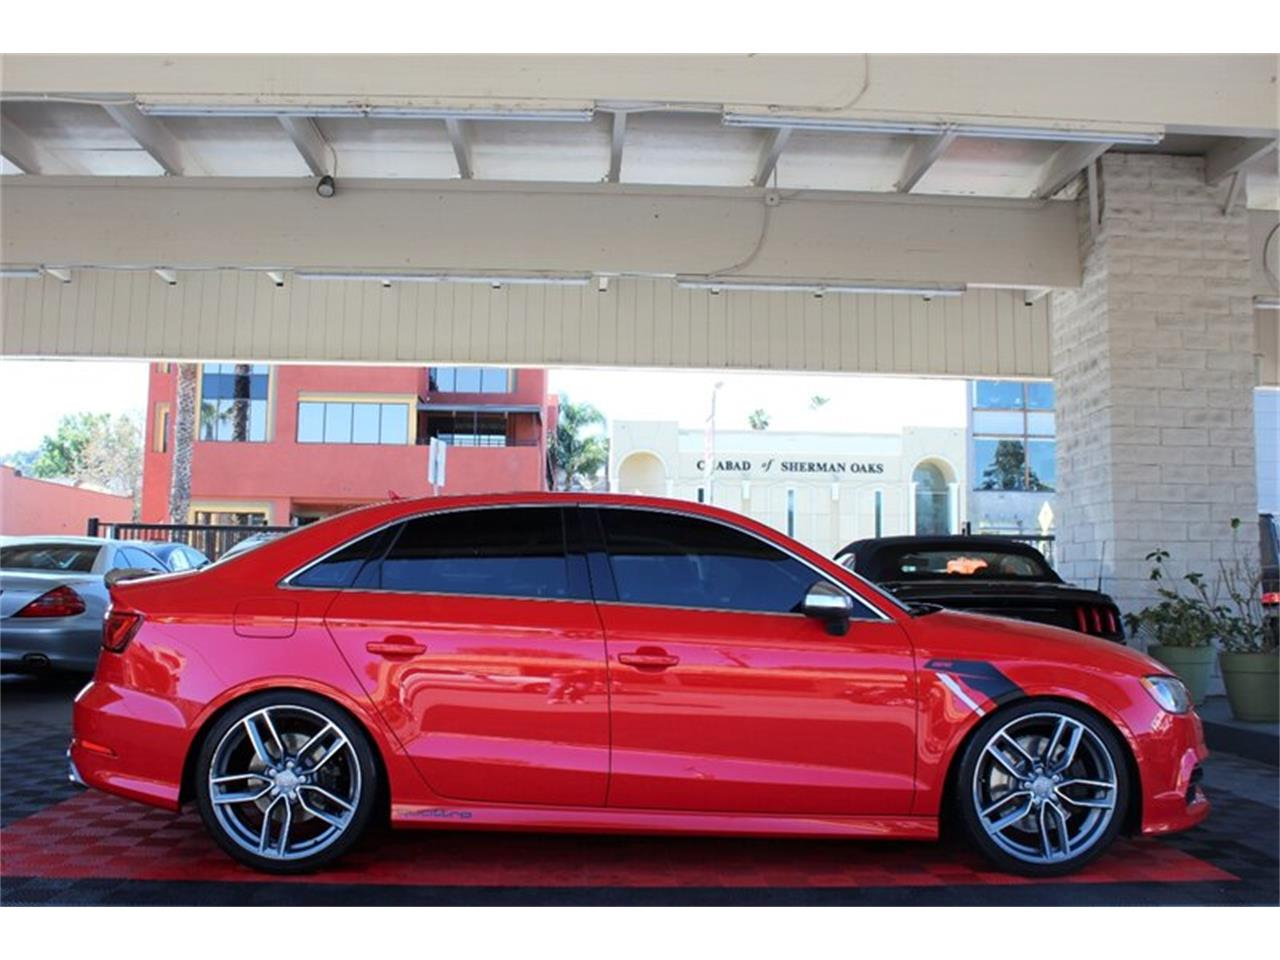 Large Picture of 2015 Audi S3 located in California - $26,995.00 Offered by Monza Car - Q3OQ